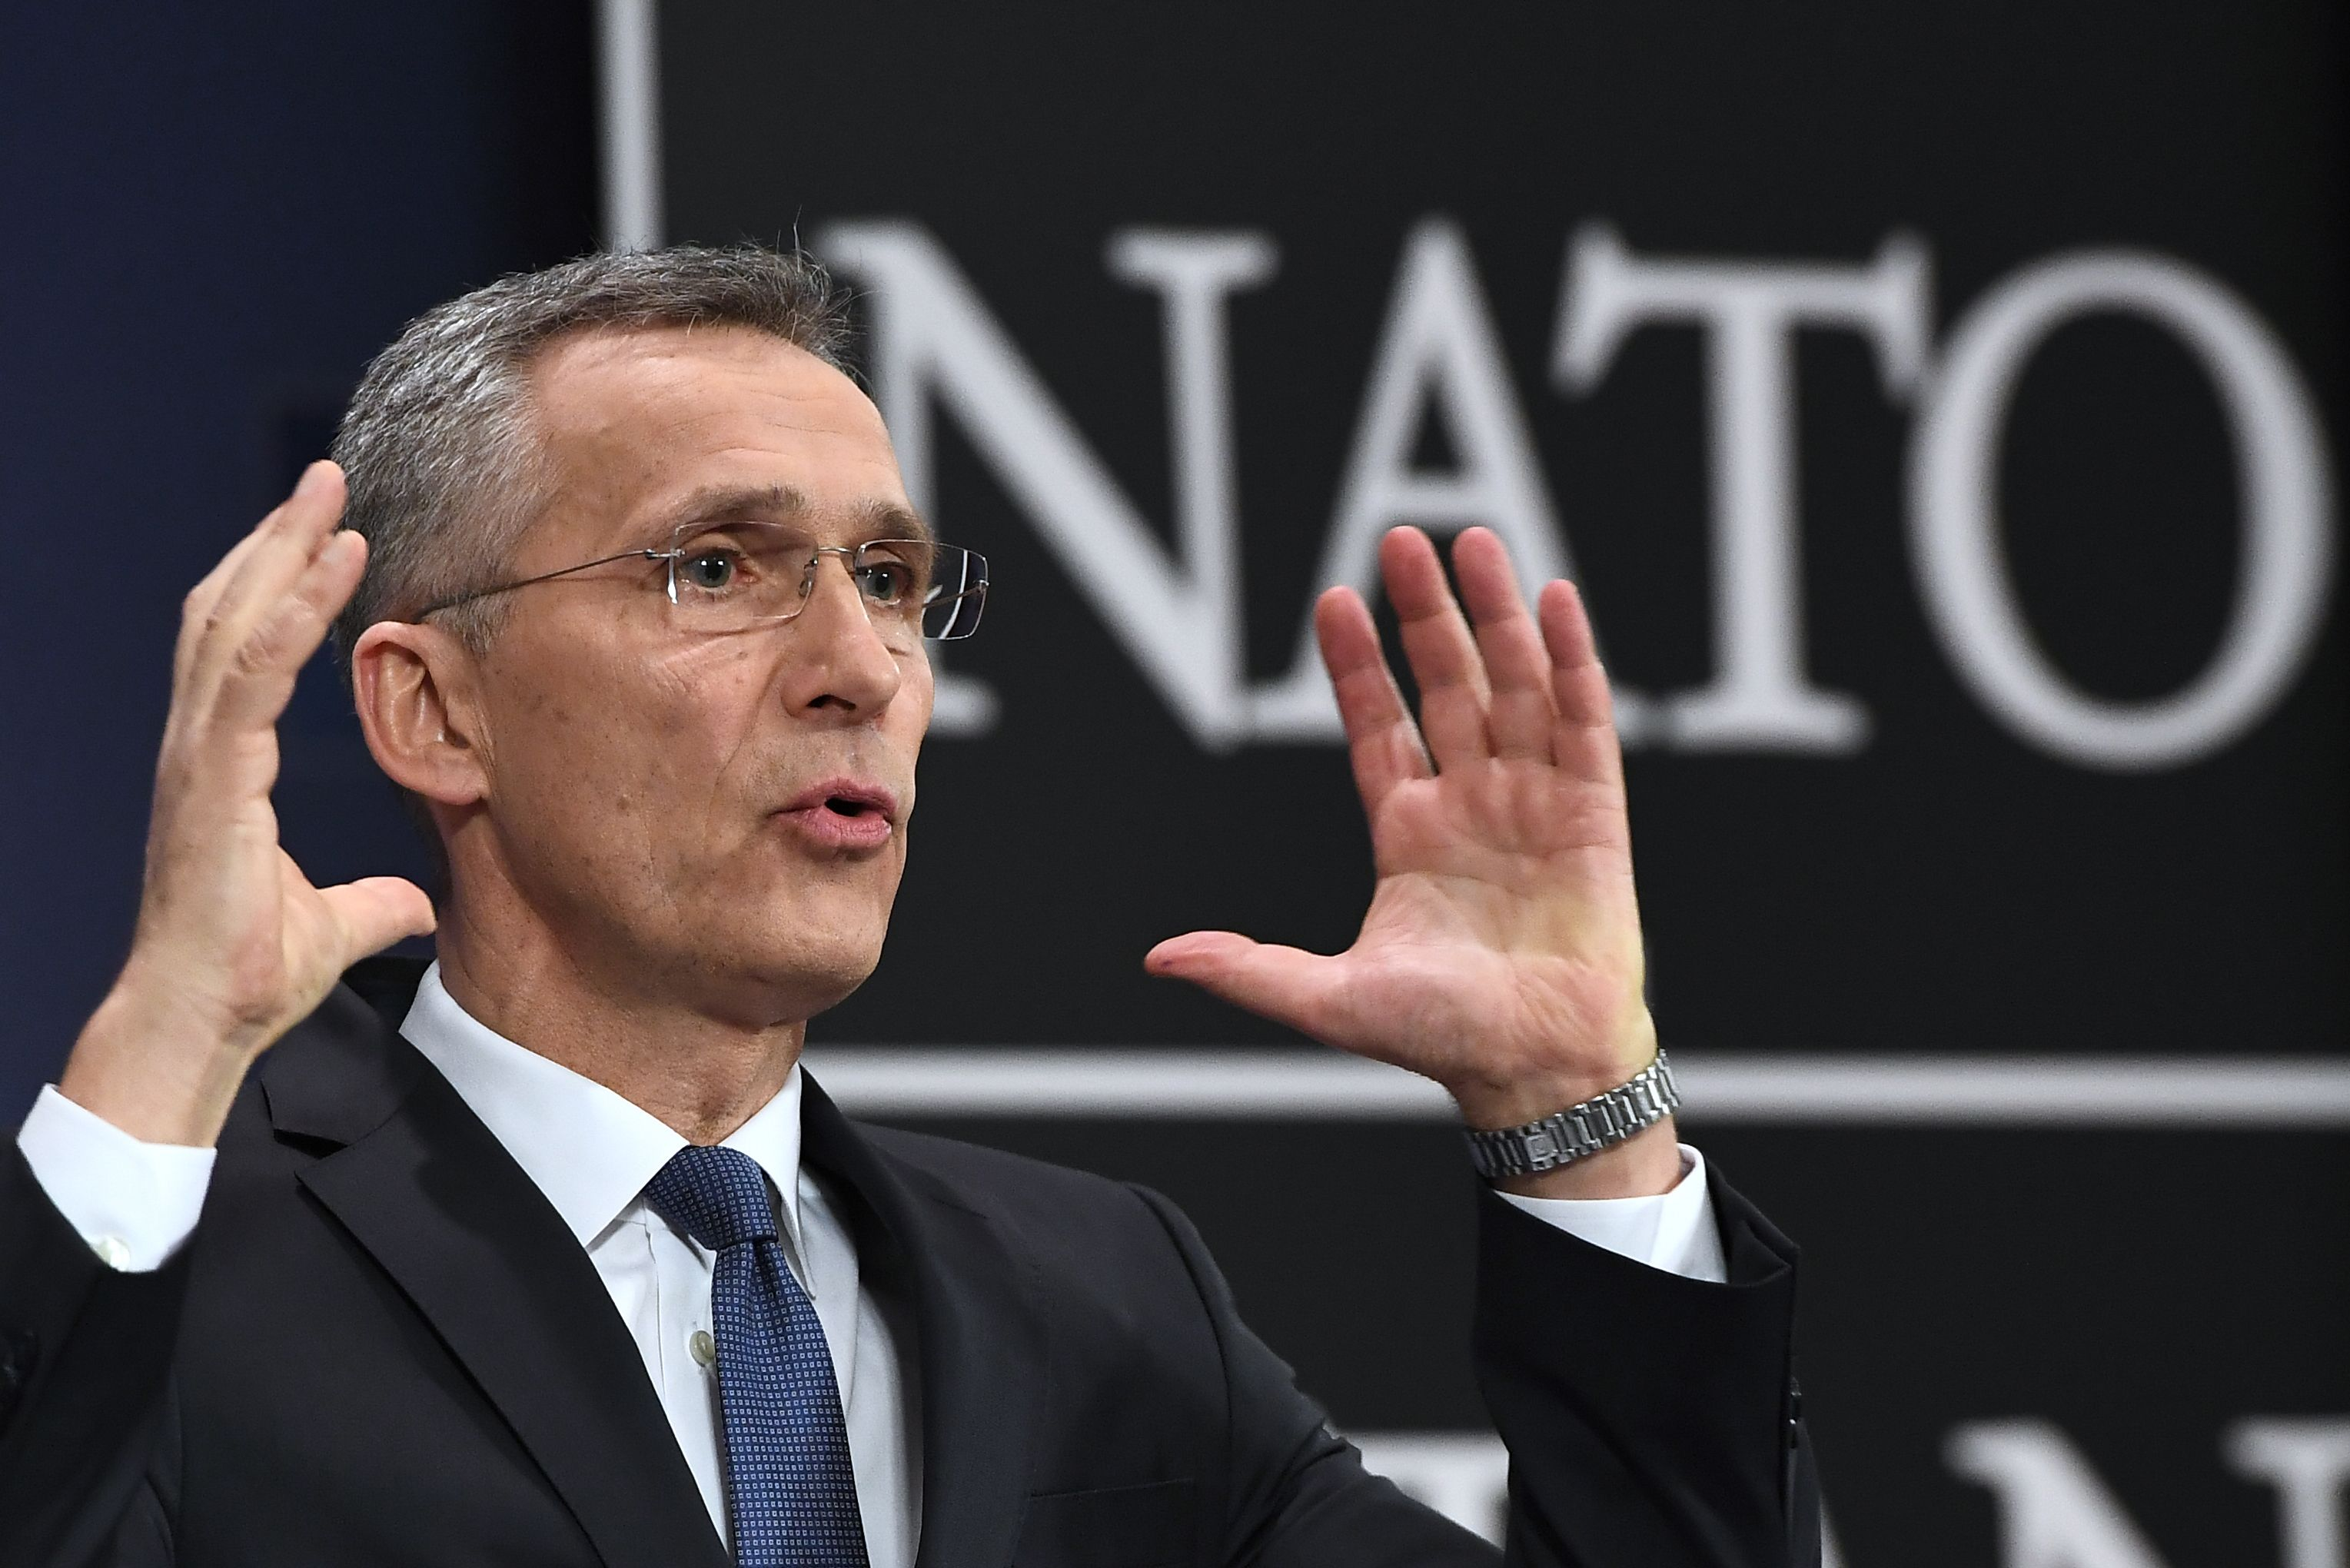 NATO Secretary-General Jens Stoltenberg gestures as he addresses a press conference to give the alliance's annual report at NATO headquarters in Brussels on March 15, 2018. (Emmanuel Dunand/AFP via Getty Images)